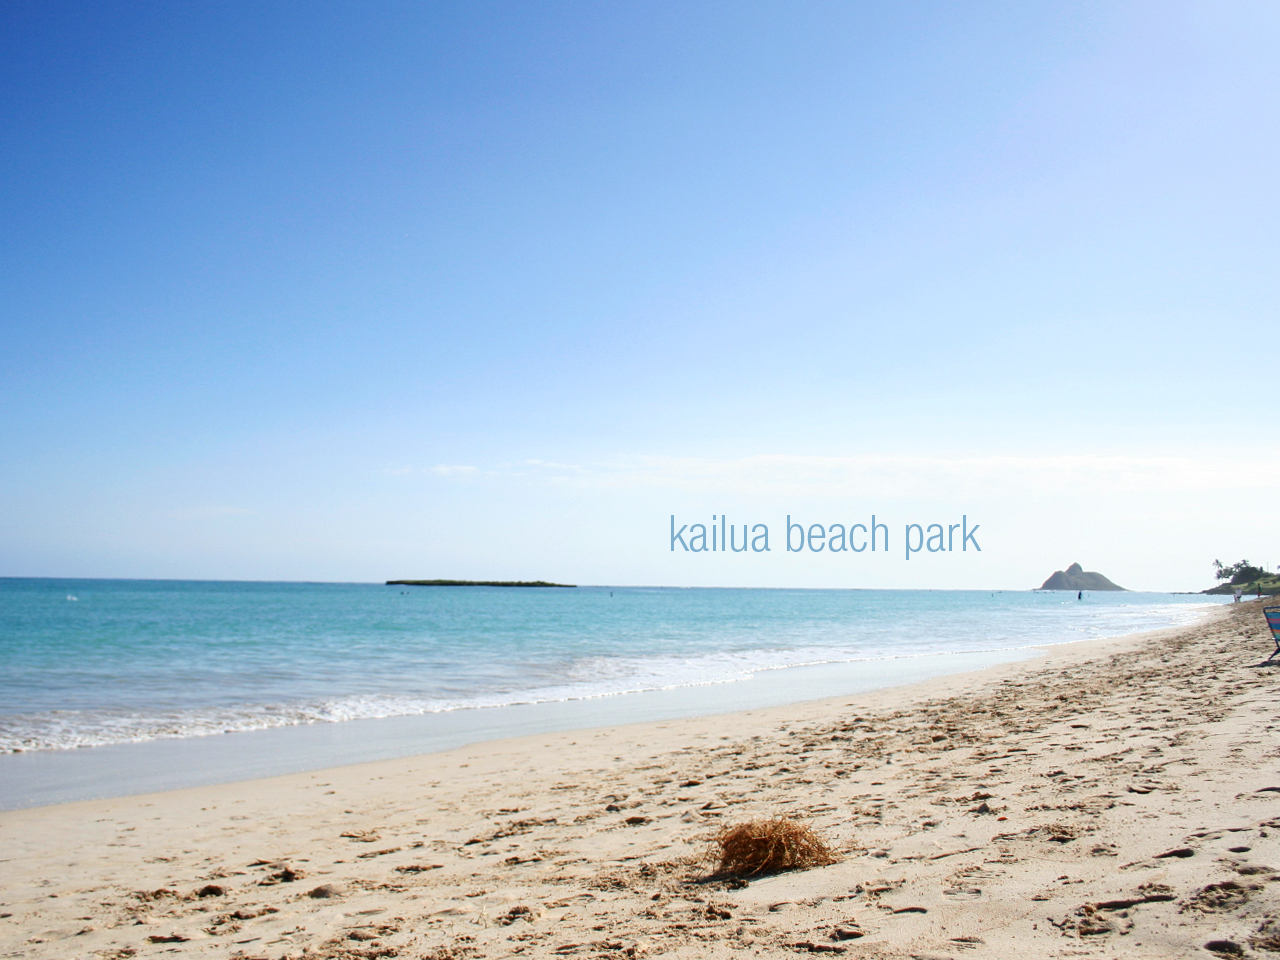 Next stop- Kailua beach park! We got here before 9am and almost had the beach to ourselves. Us and a cute old Italian man who vacations there for 3 months each year.